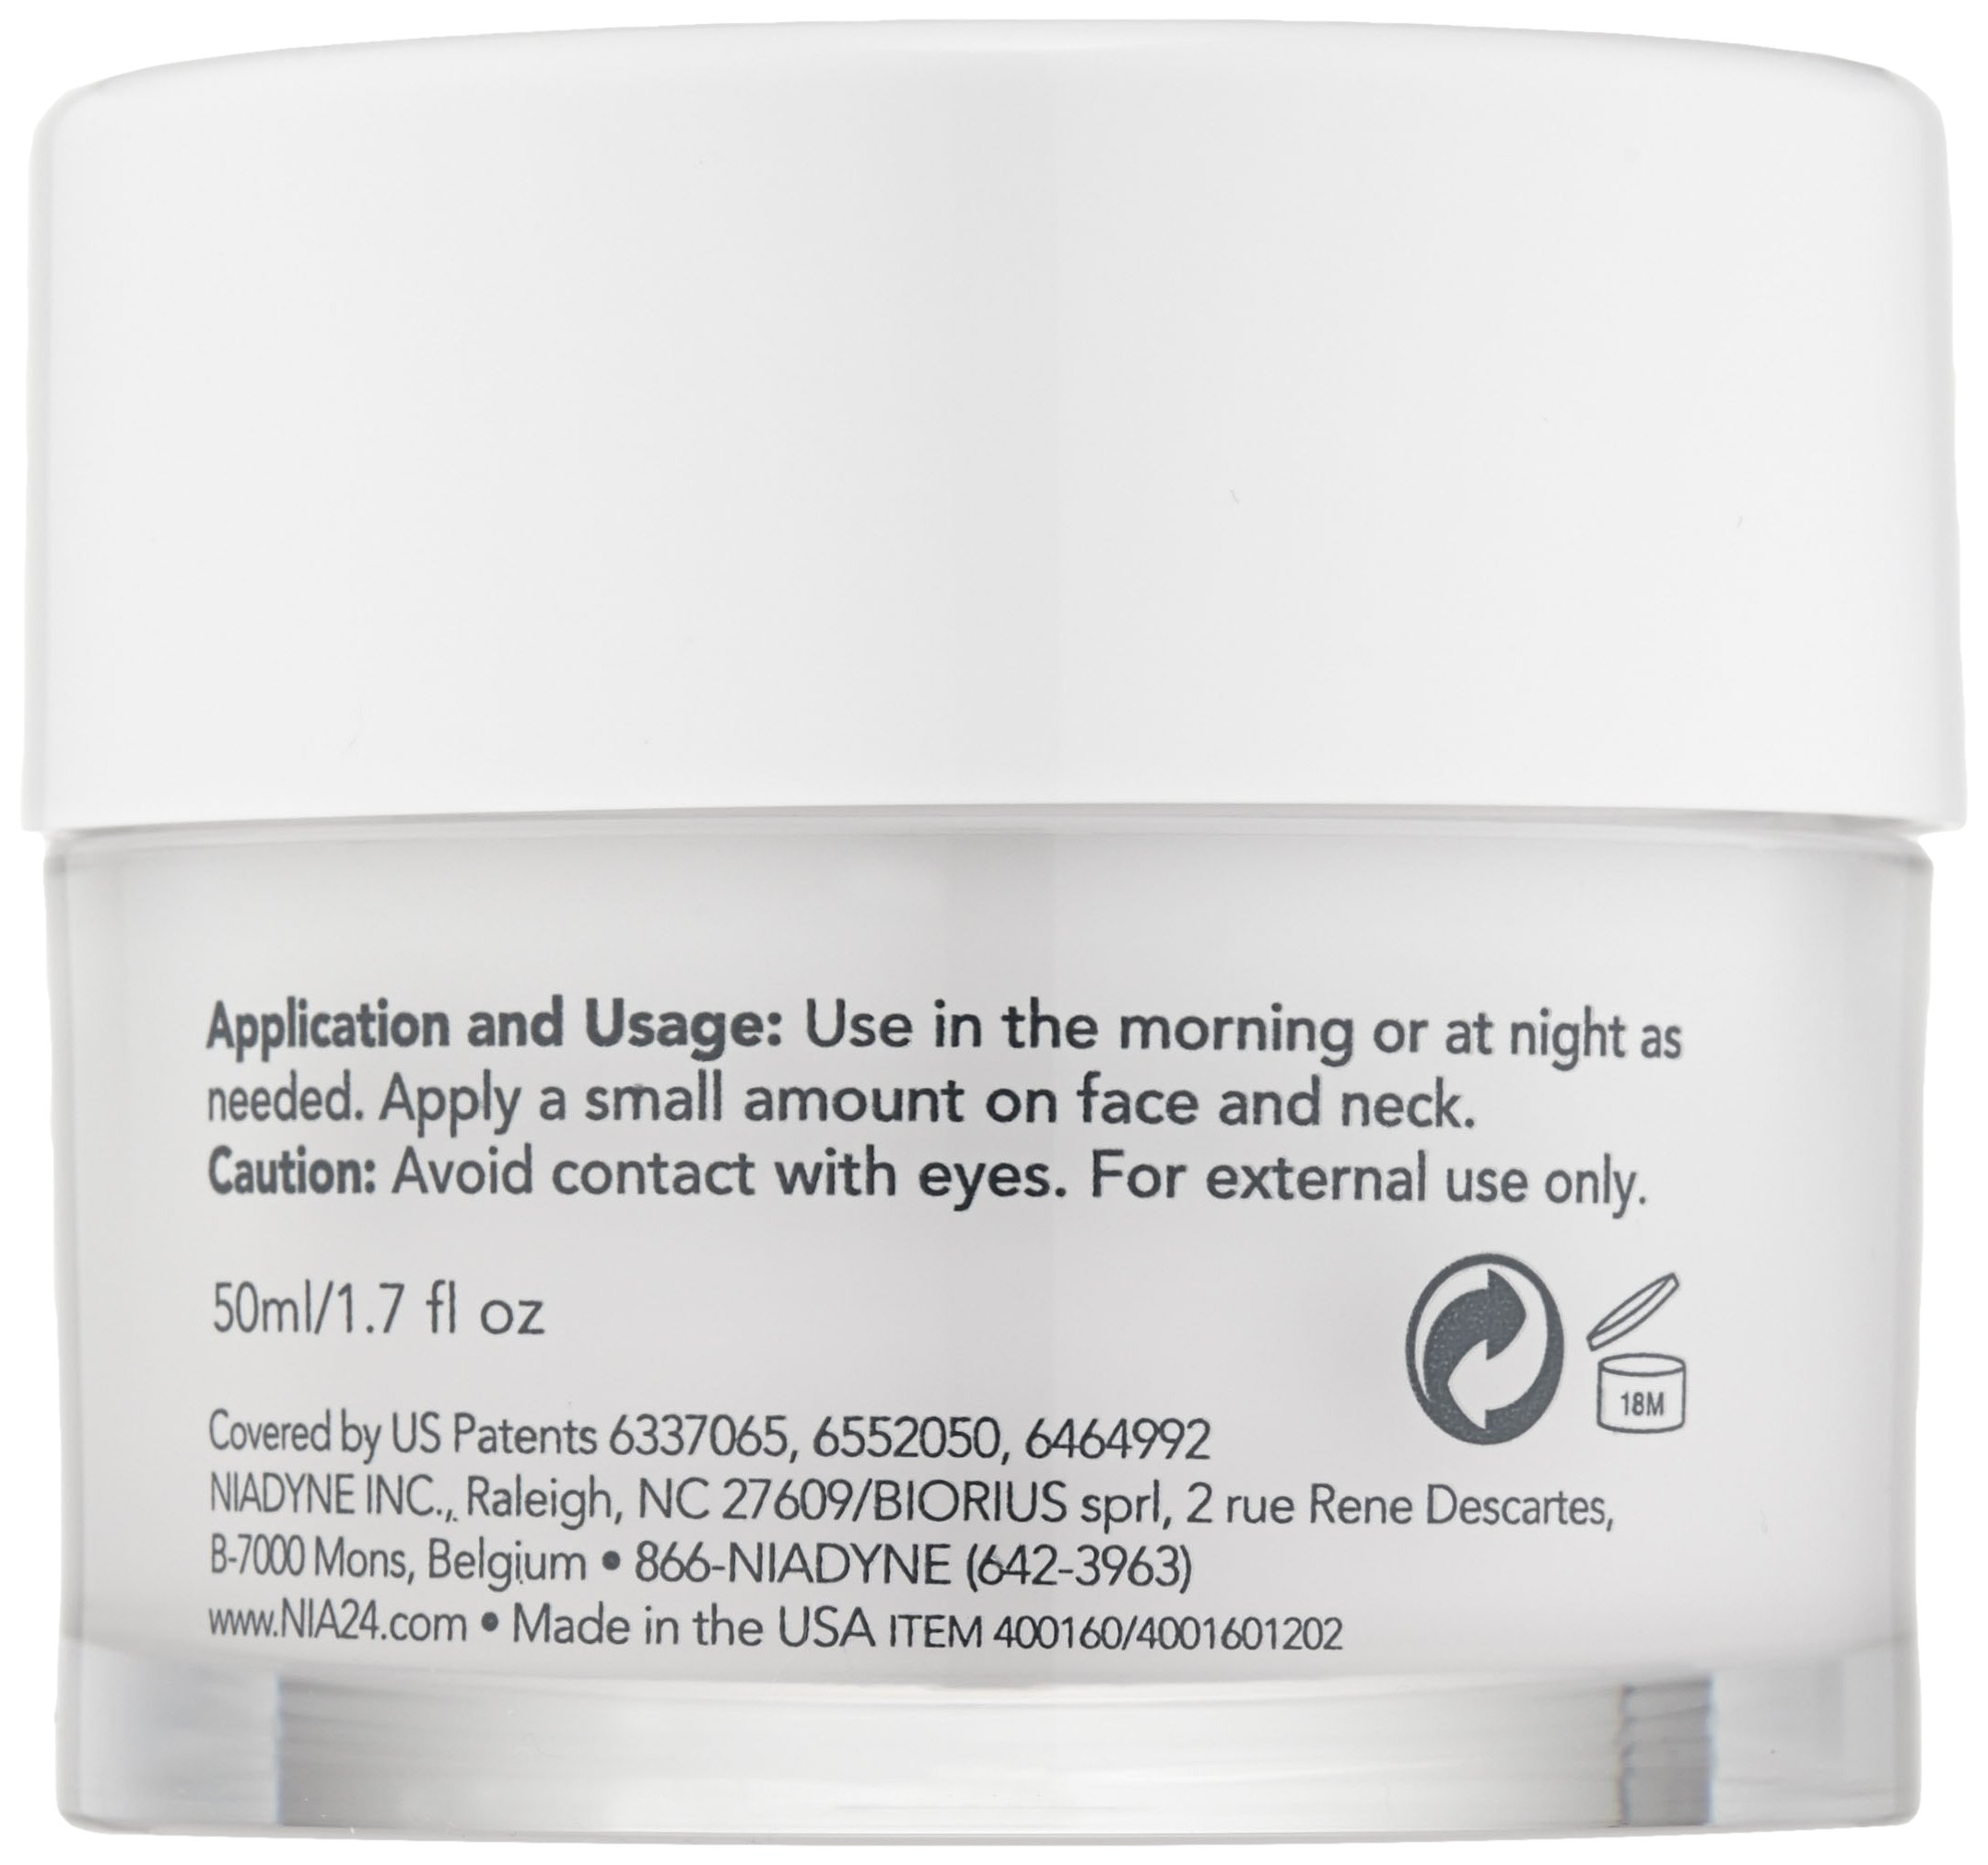 Nia 24 Intensive Recovery Complex, 1.7 fl. oz. by Nia 24 (Image #5)